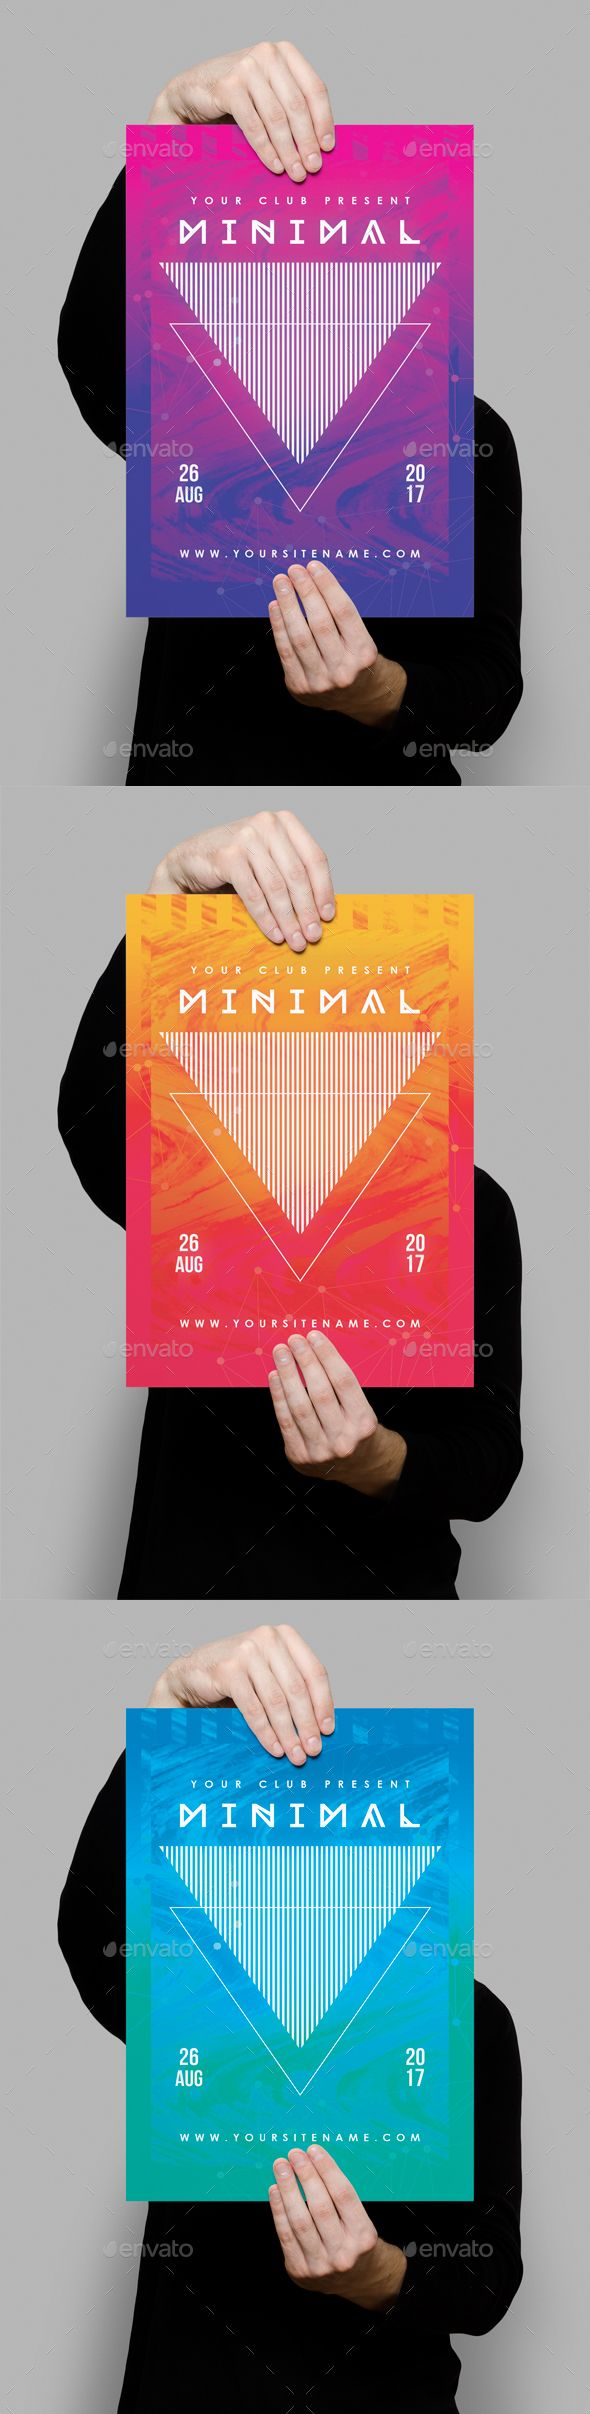 Modern Minimal Club Poster — Photoshop PSD #elegant #dj • Download ➝ https://graphicriver.net/item/modern-minimal-club-poster/19198010?ref=pxcr